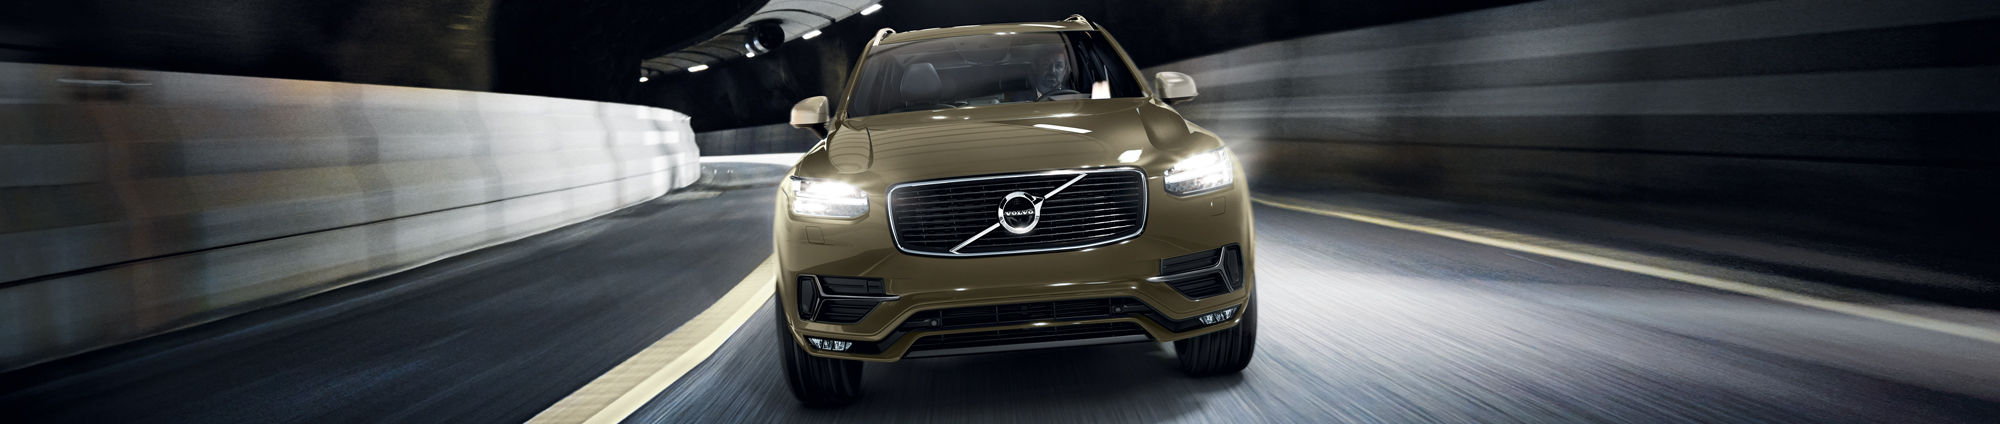 Volvo Recommends Castrol EDGE